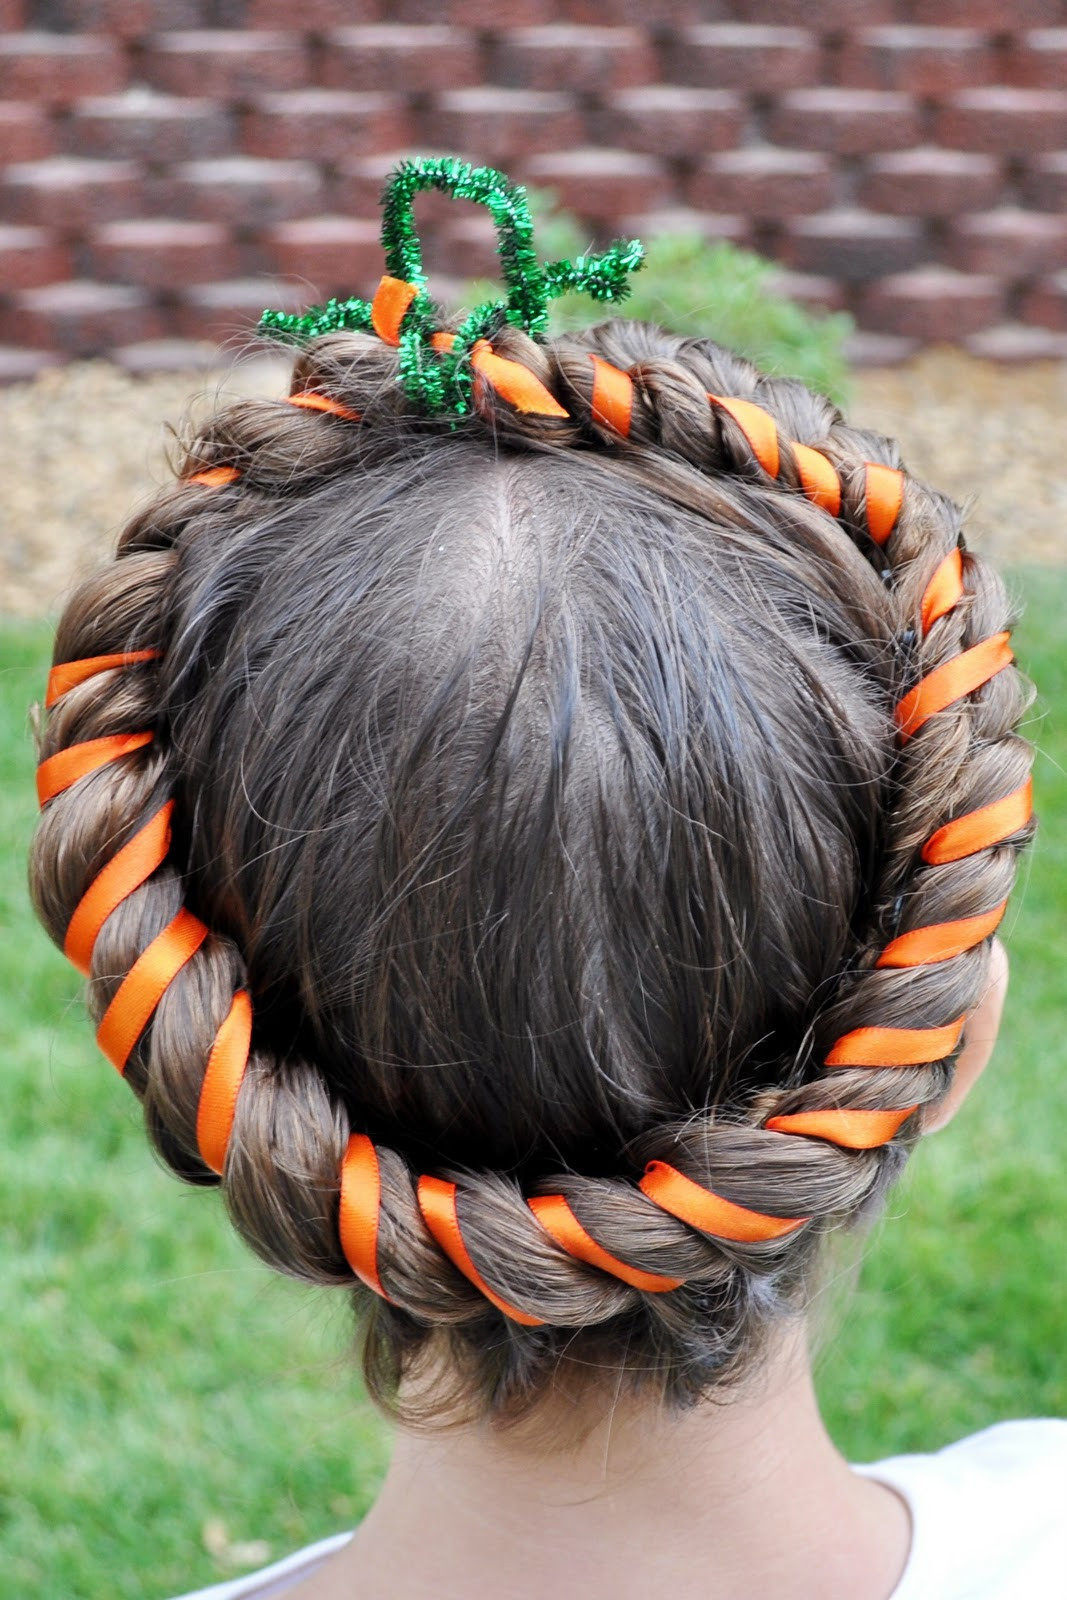 Best ideas about Cute Halloween Hairstyles . Save or Pin Princess Piggies Halloween Hairstyles Recap Now.